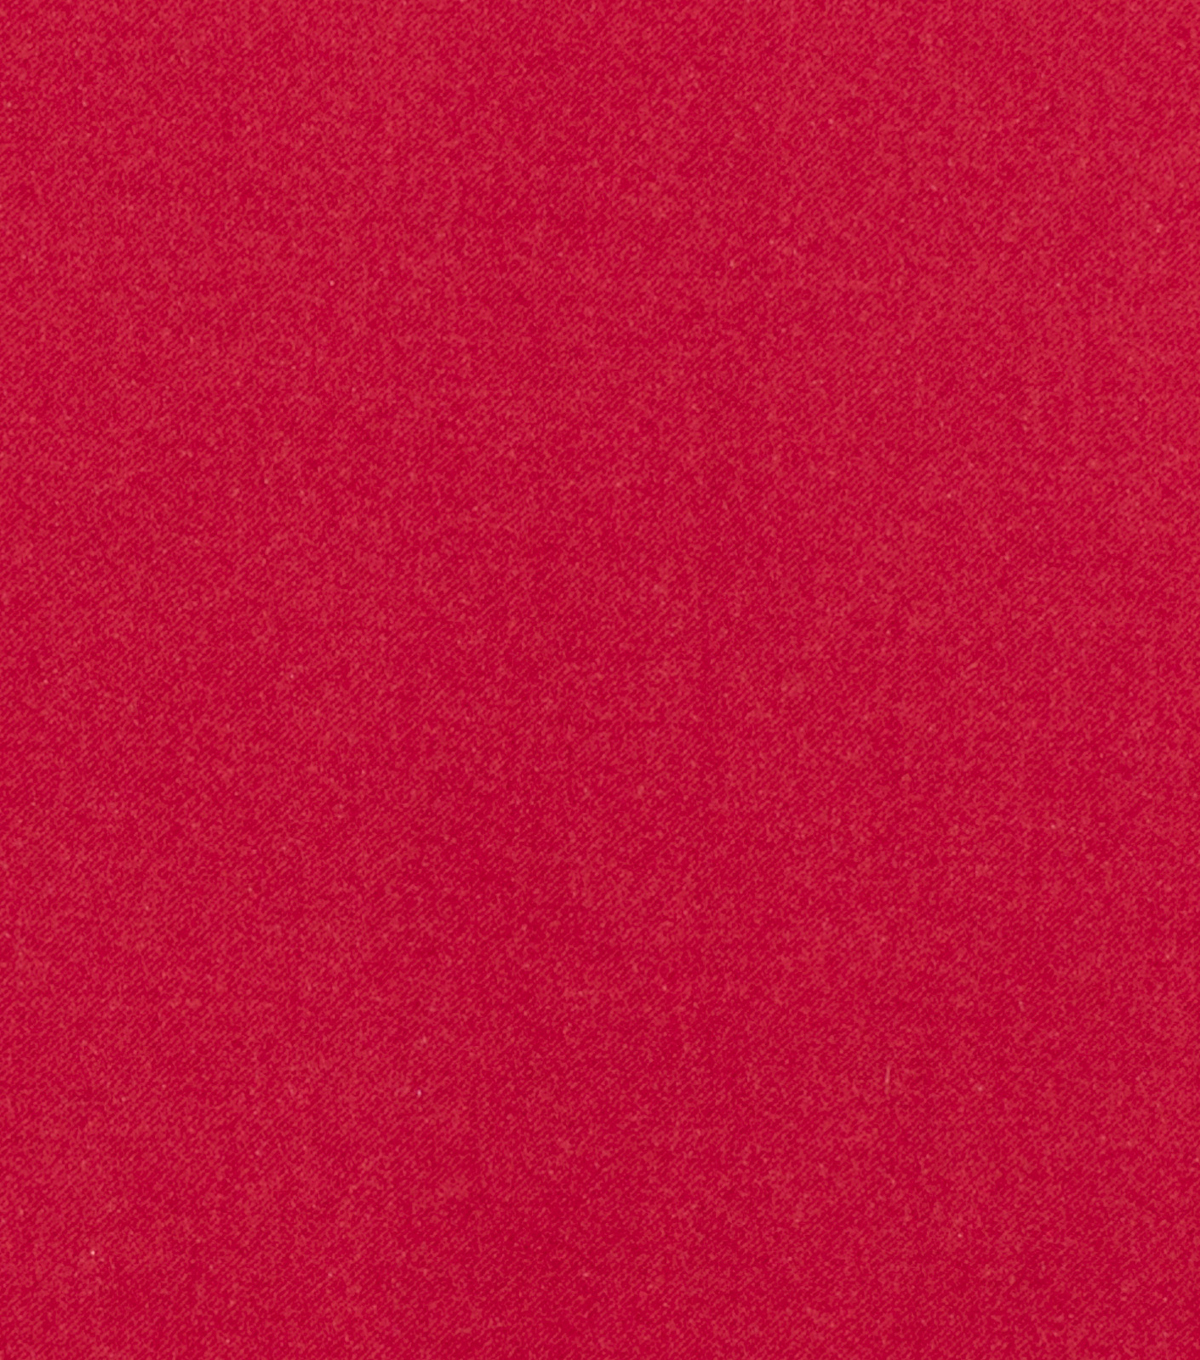 Home Decor 8\u0022x8\u0022 Fabric Swatch-Signature Series Couture Satin Grenadine